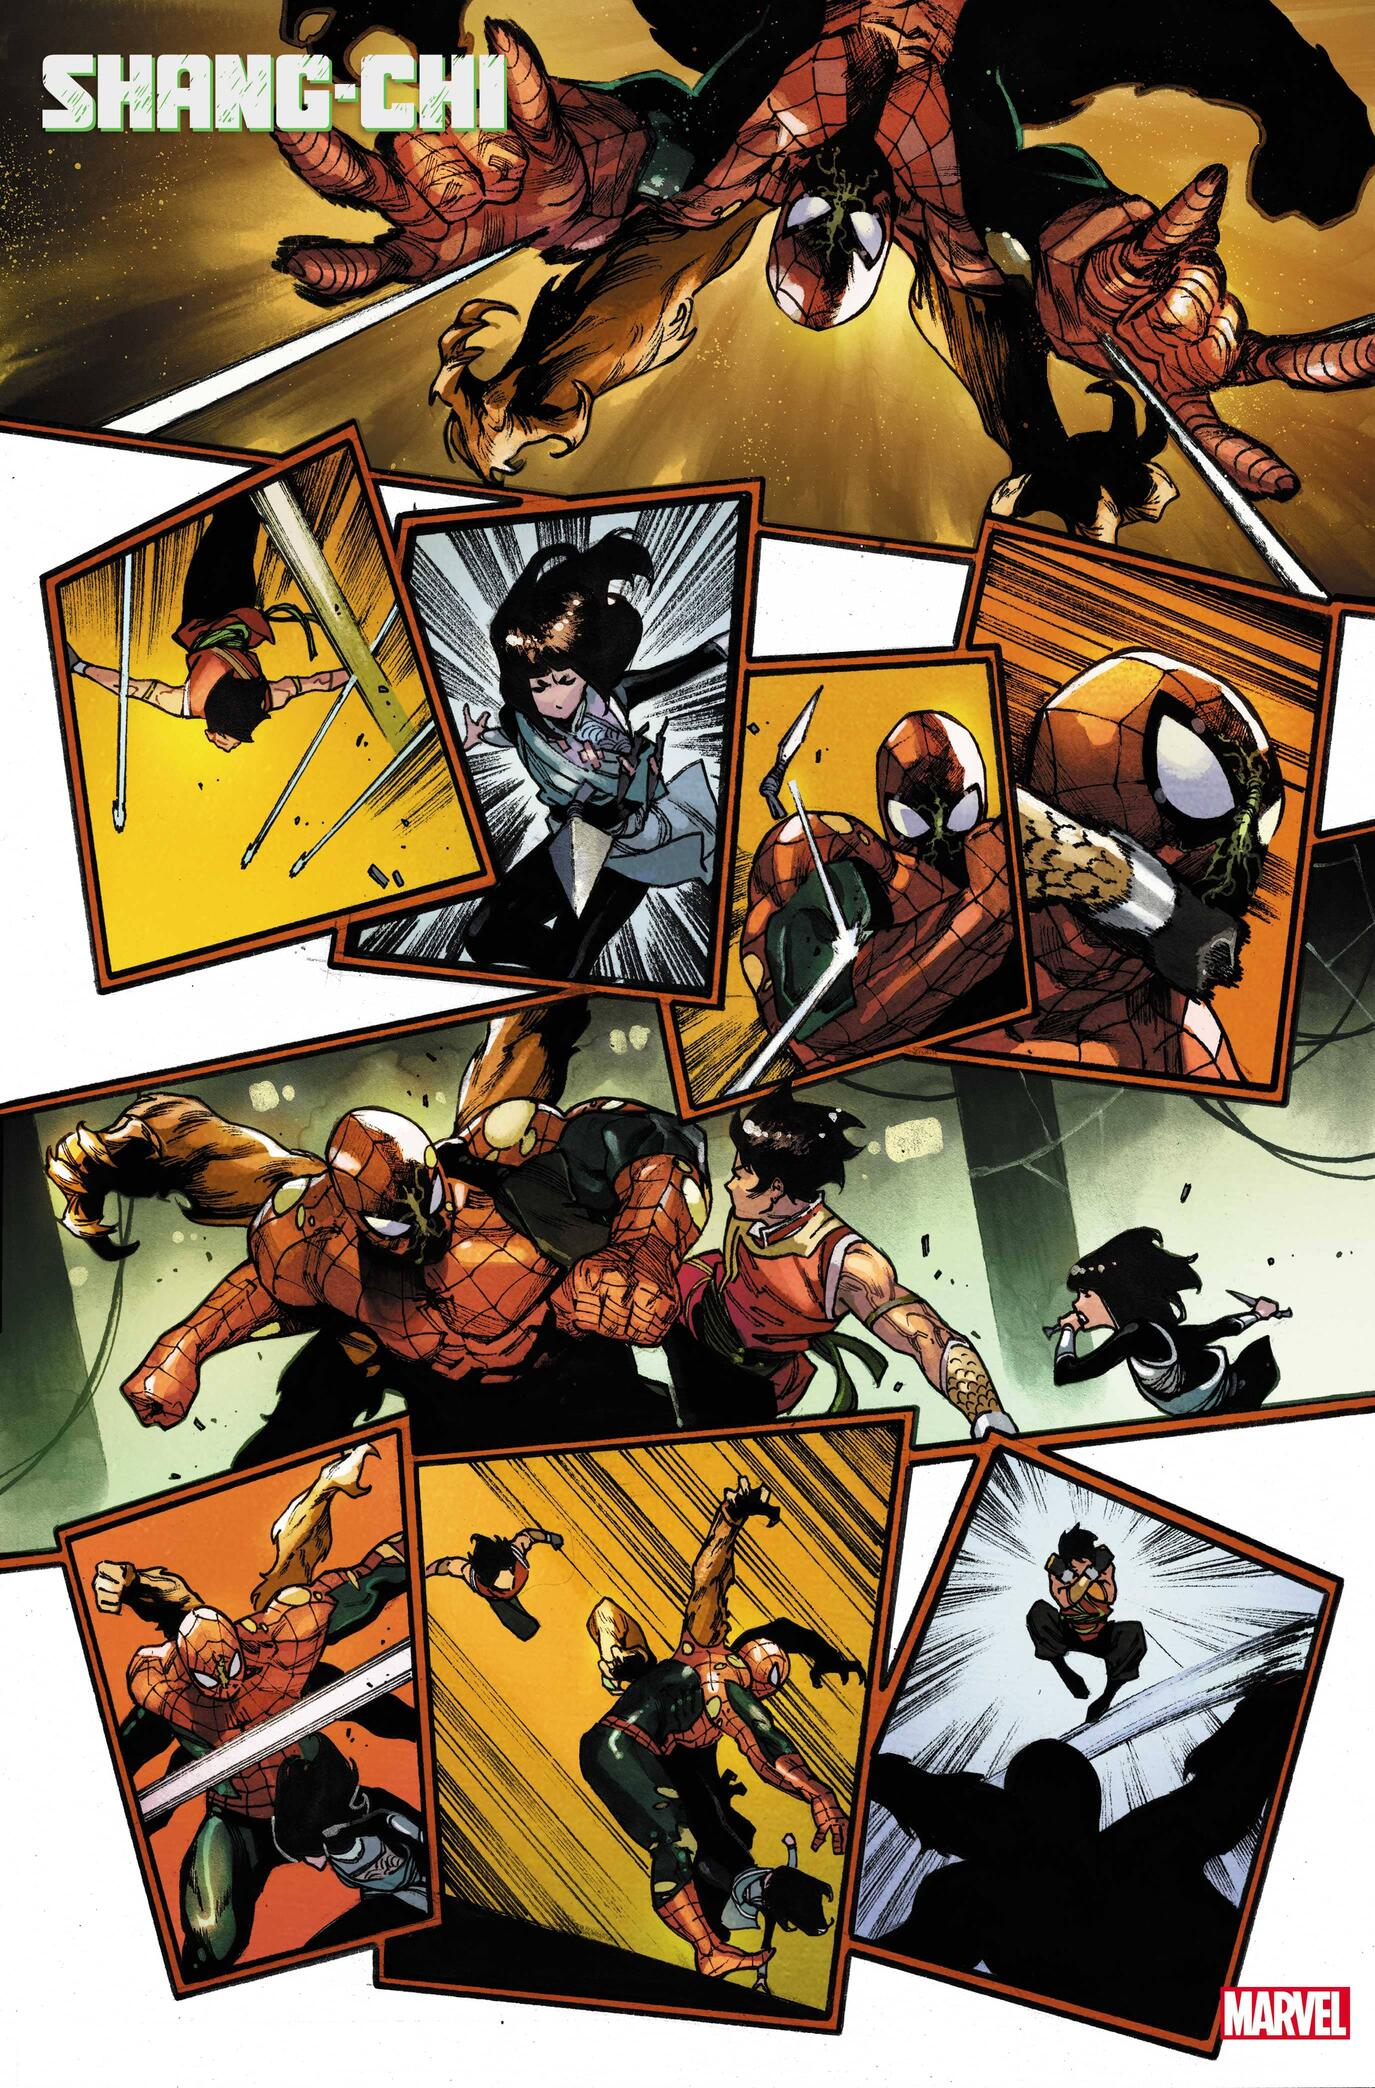 SHANG-CHI (2021) #1 interior art by Dike Ruan with colors by Tríona Farrell